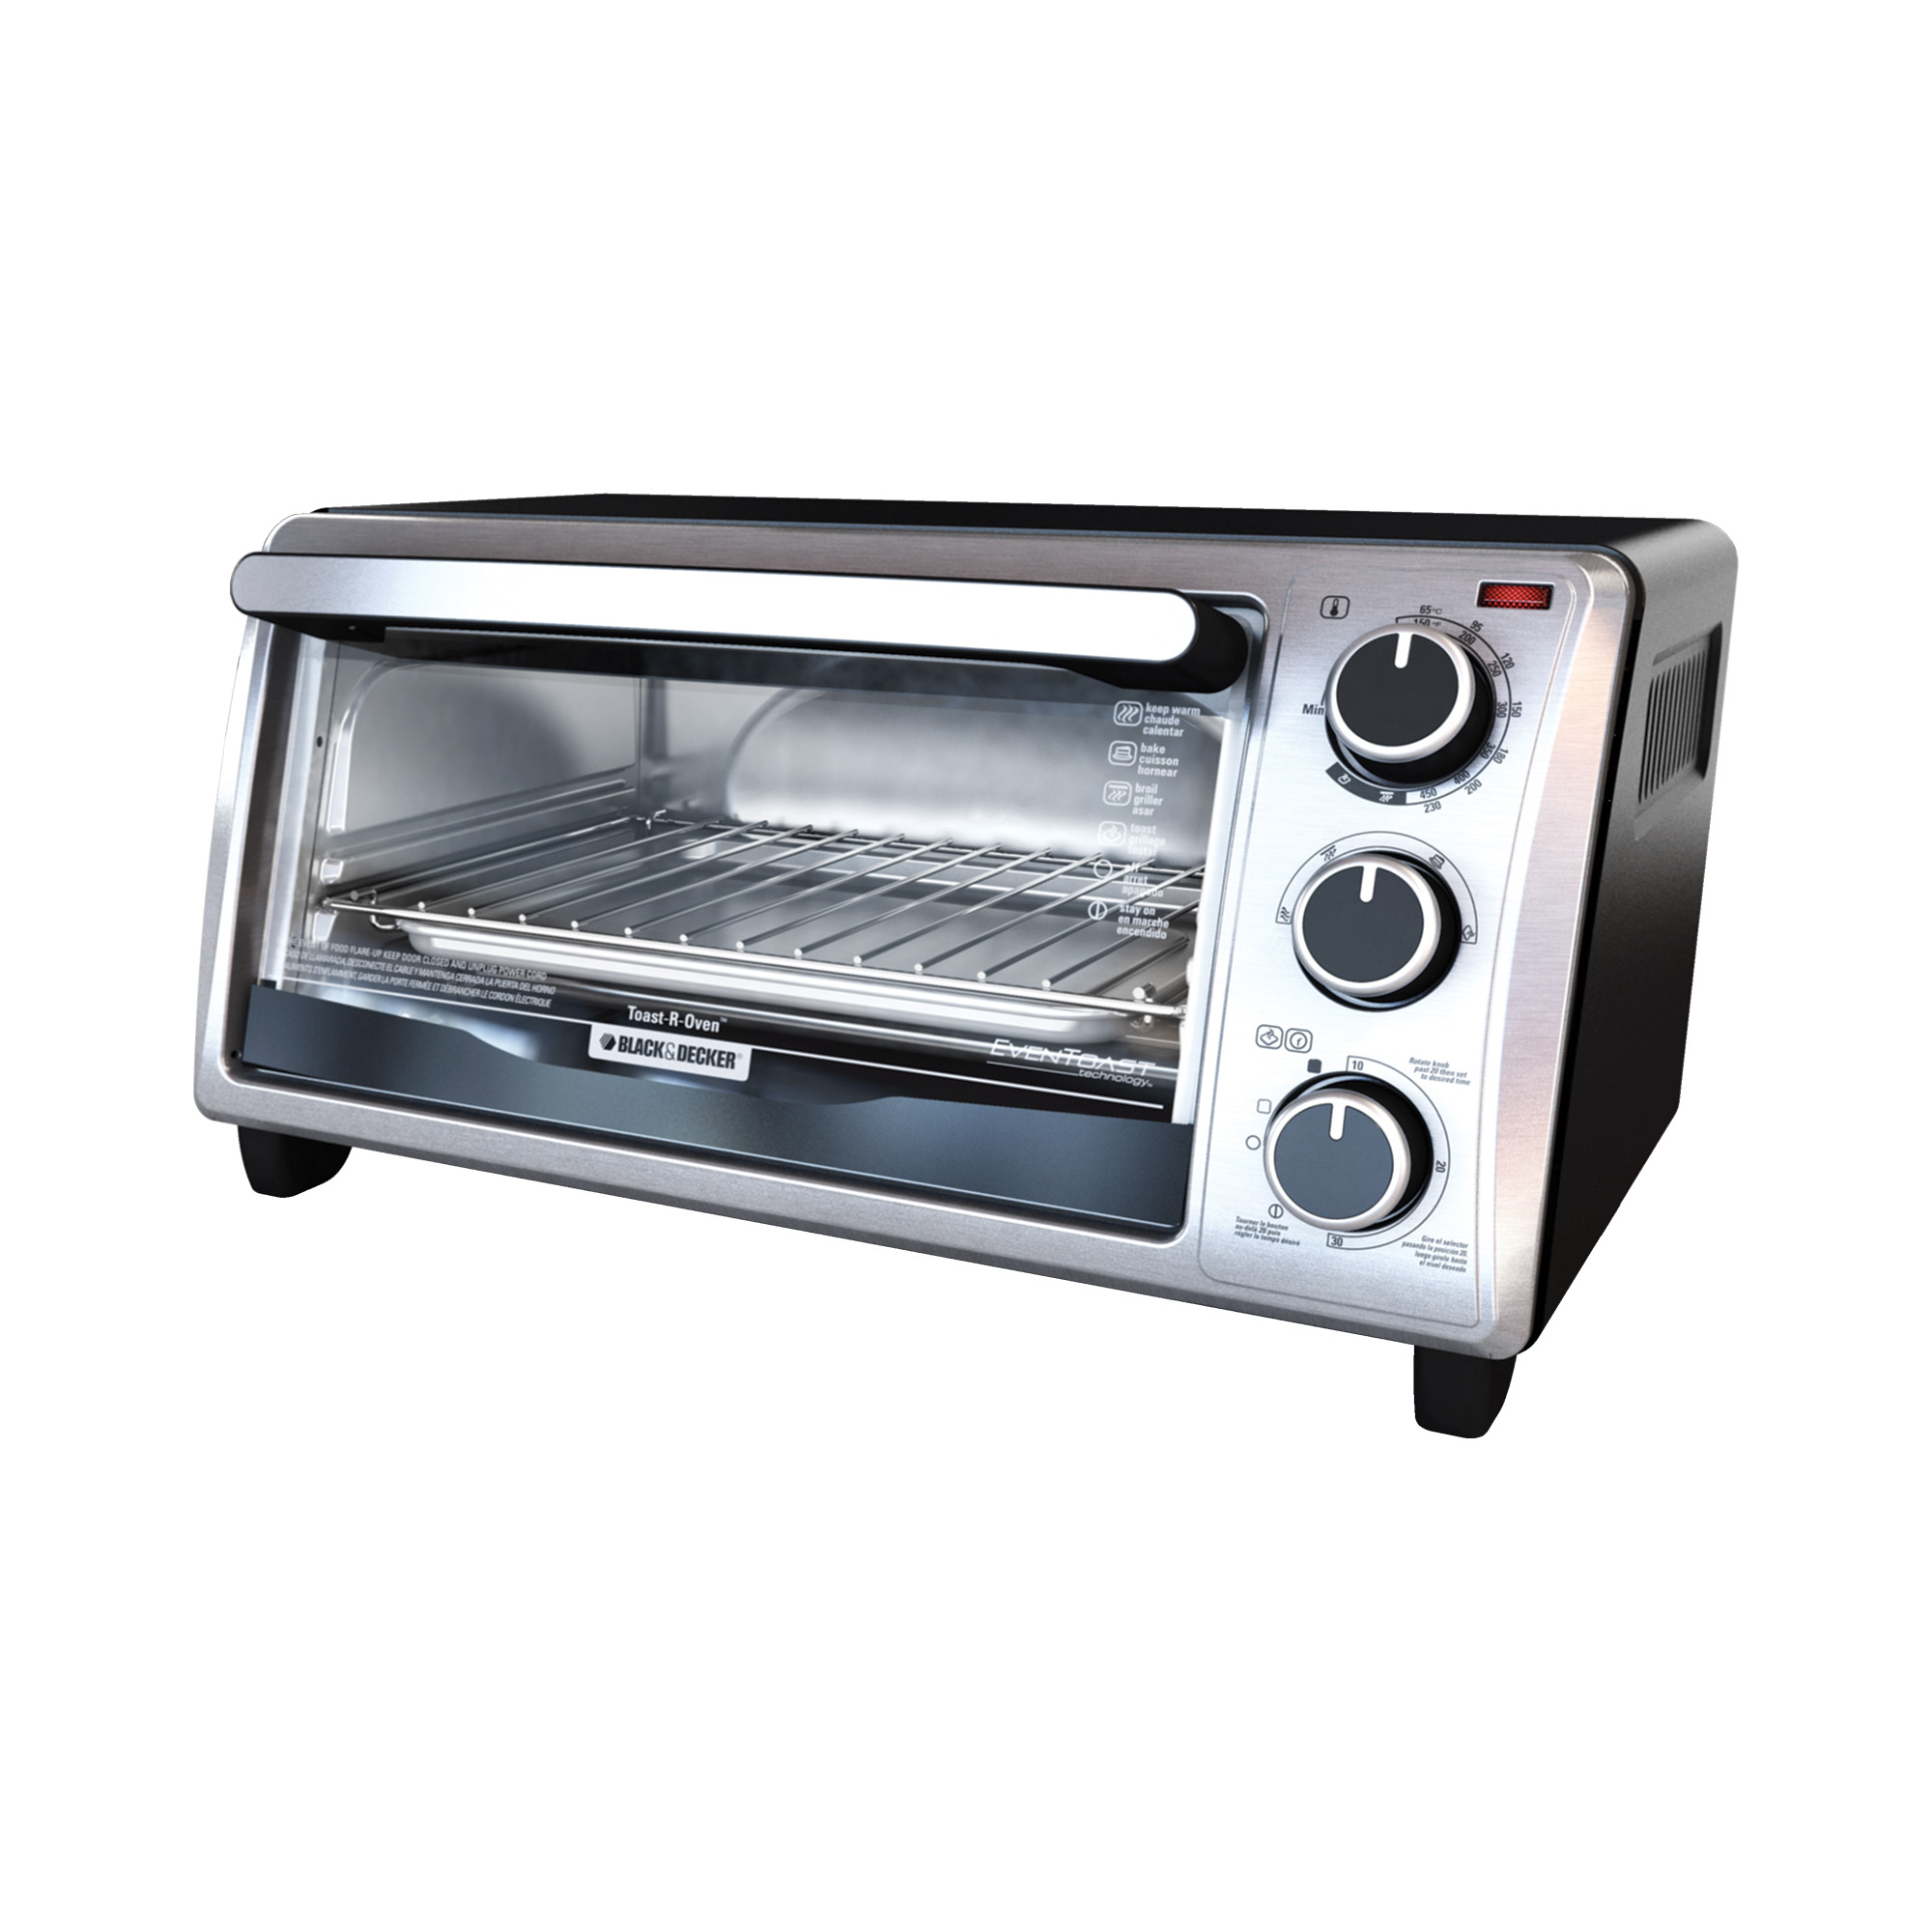 TO1303SBD_HERO_HR.ashx?mh=285 convection and toaster ovens cooking appliances black decker black and decker toaster oven wiring diagram at webbmarketing.co